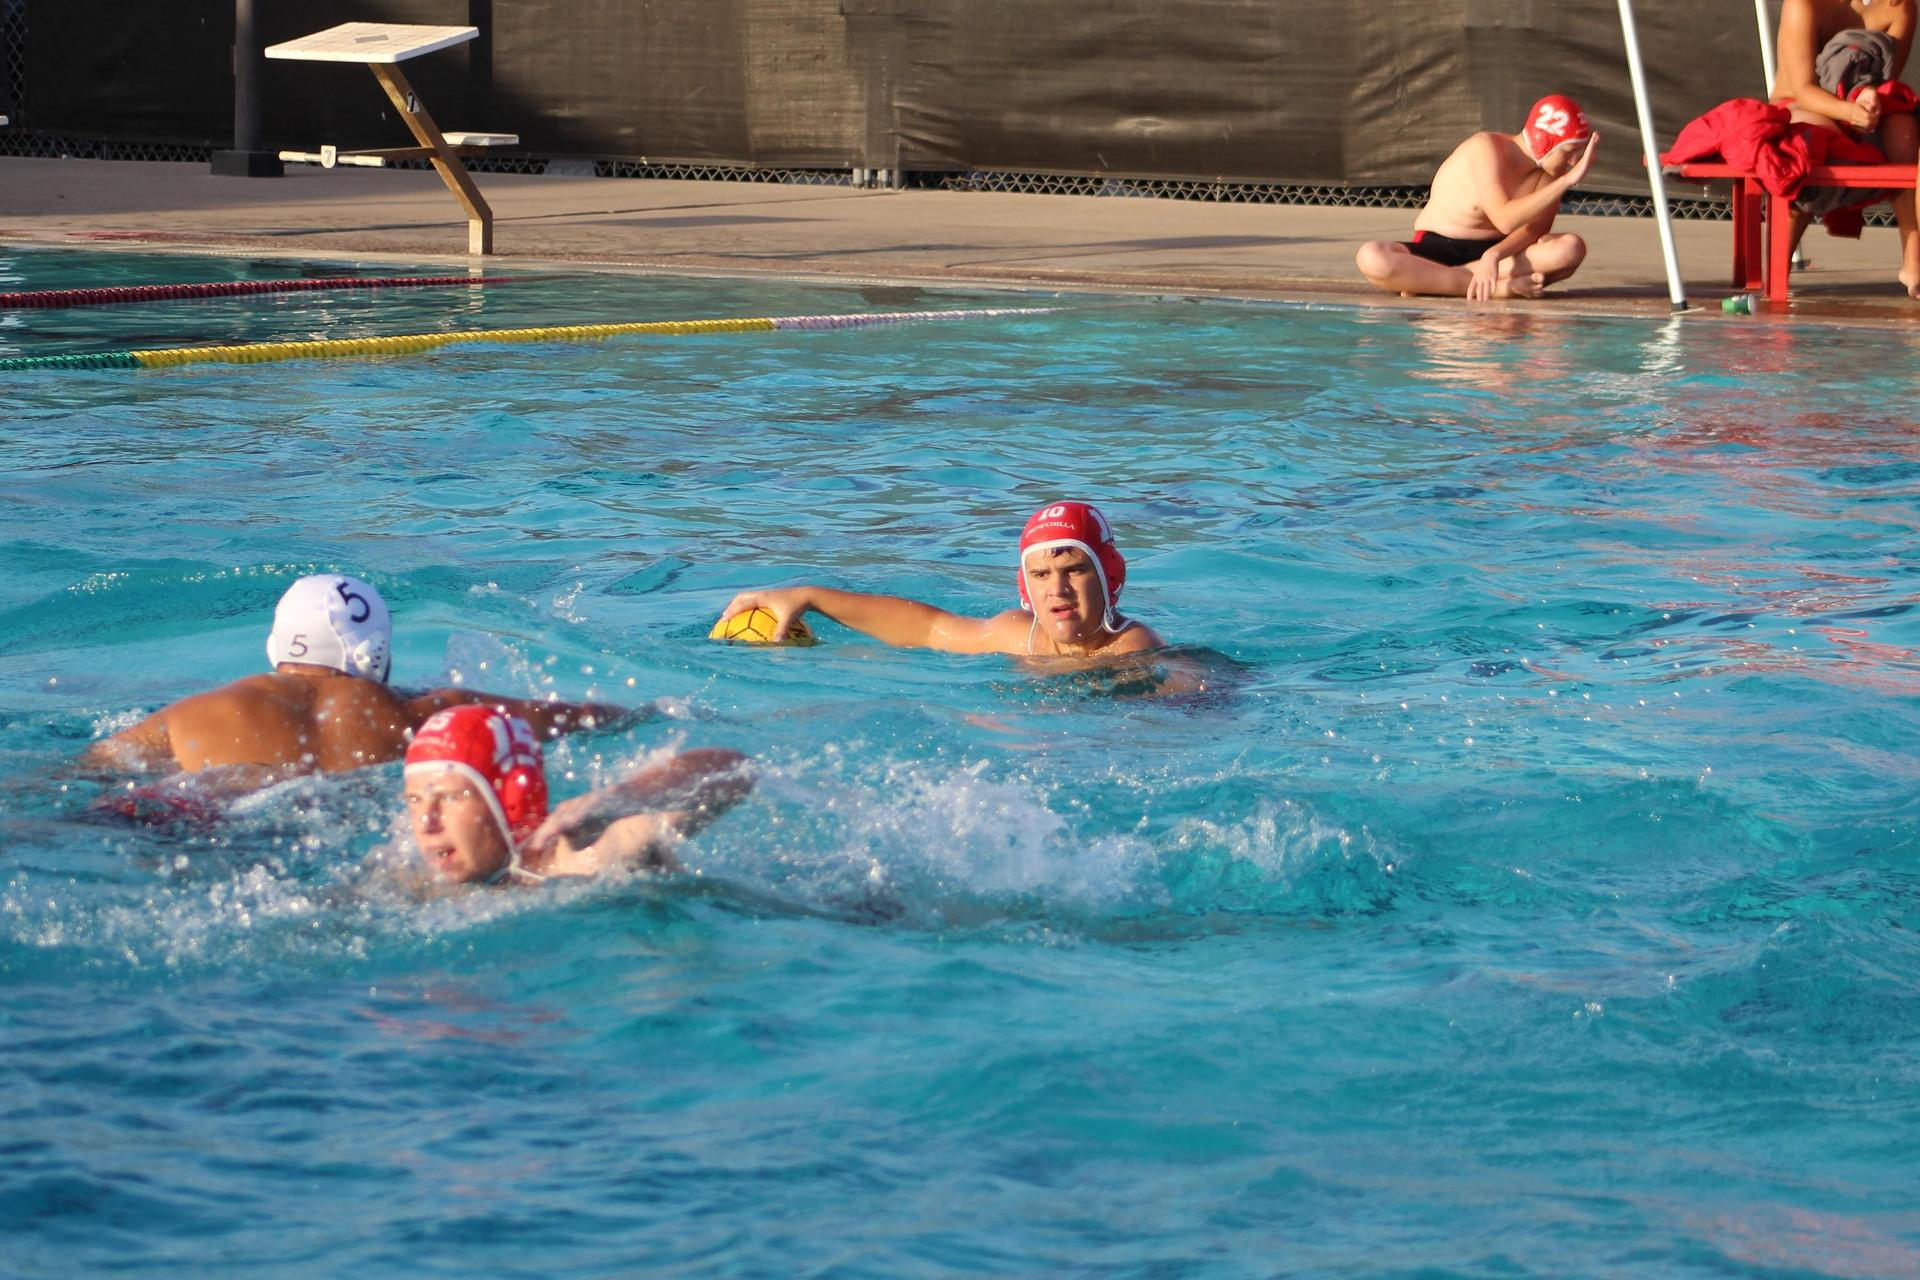 Boys water polo player with the ball